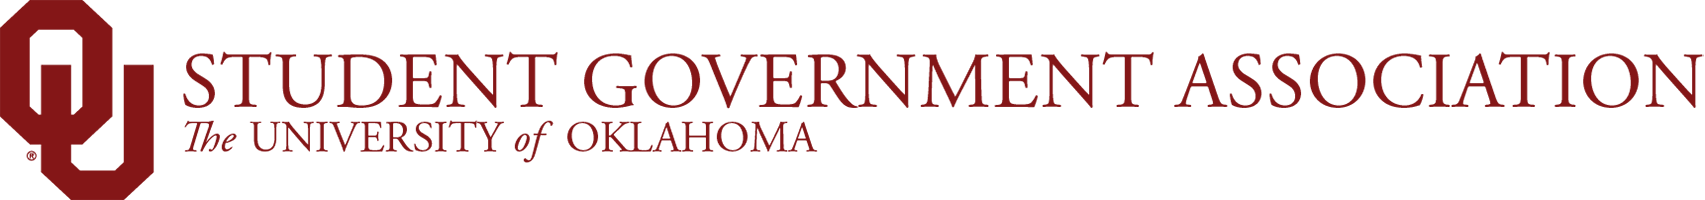 SGA Website Header and Wordmark